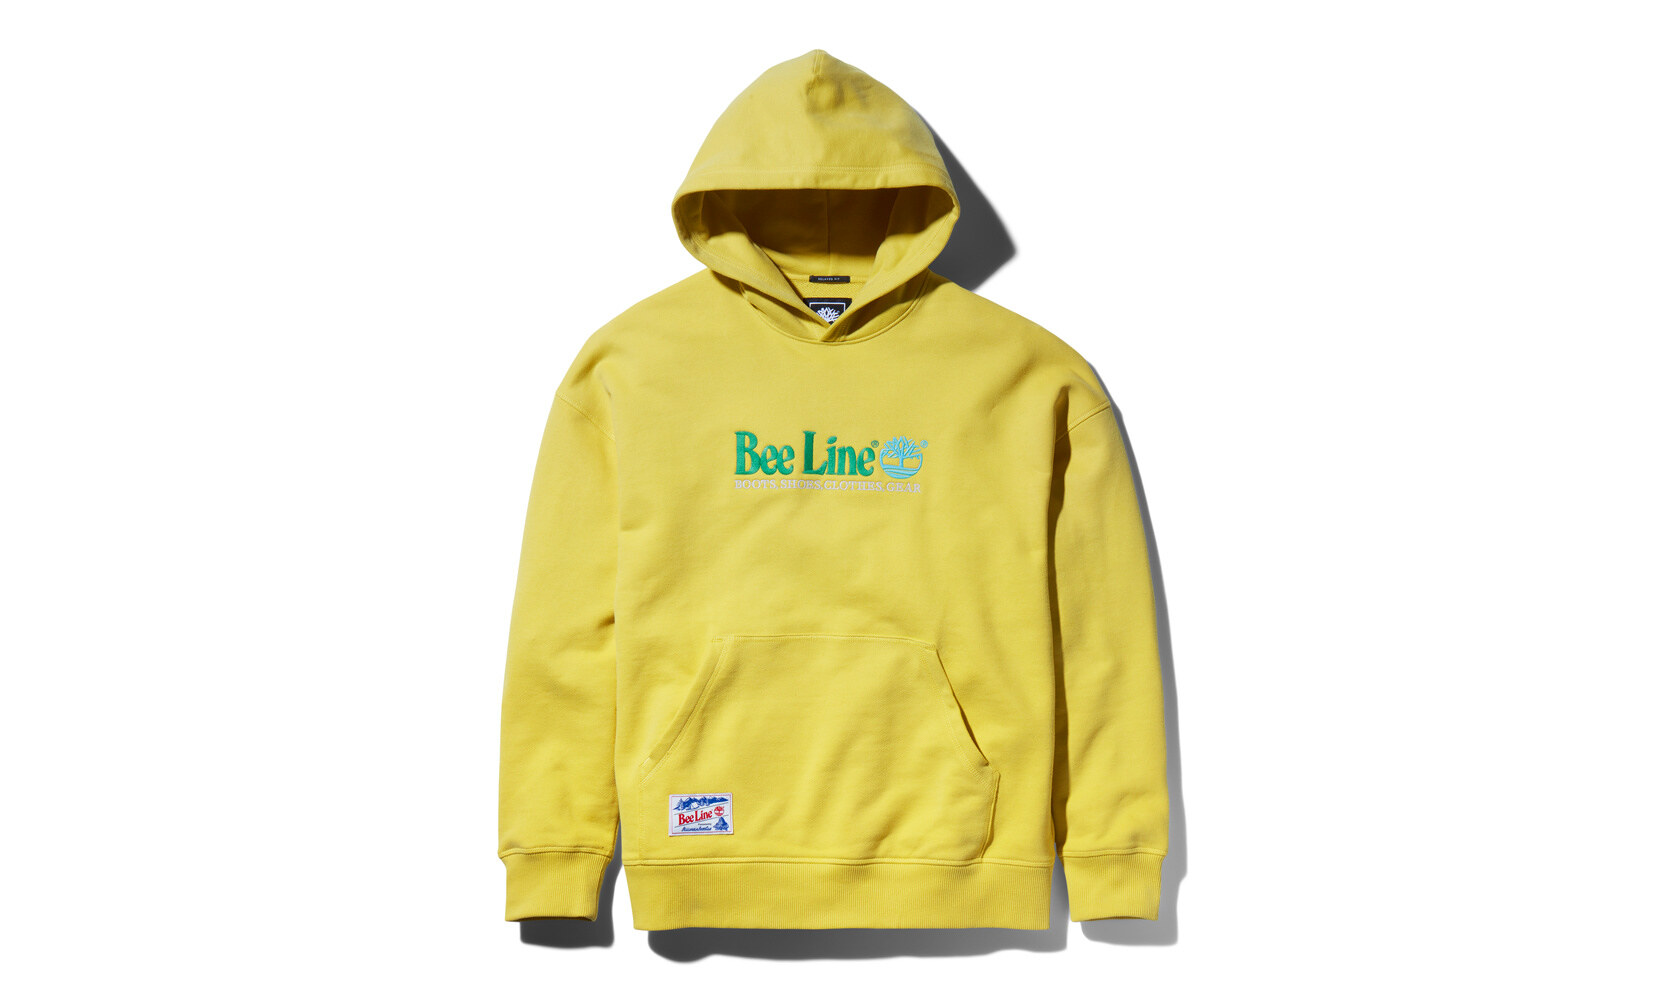 Timberland x Bee Line collection